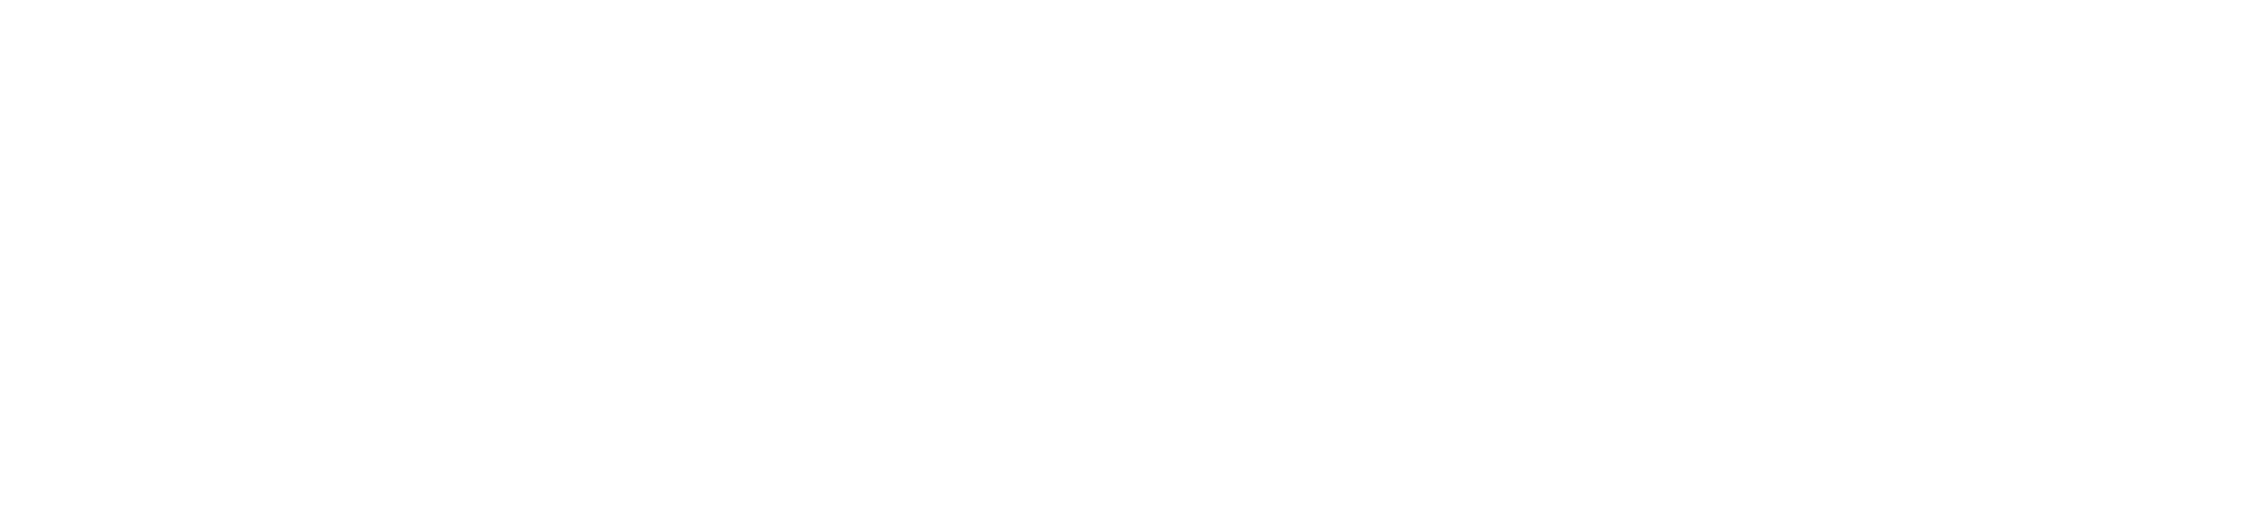 Logo de Teamfight Tactics Galaxies